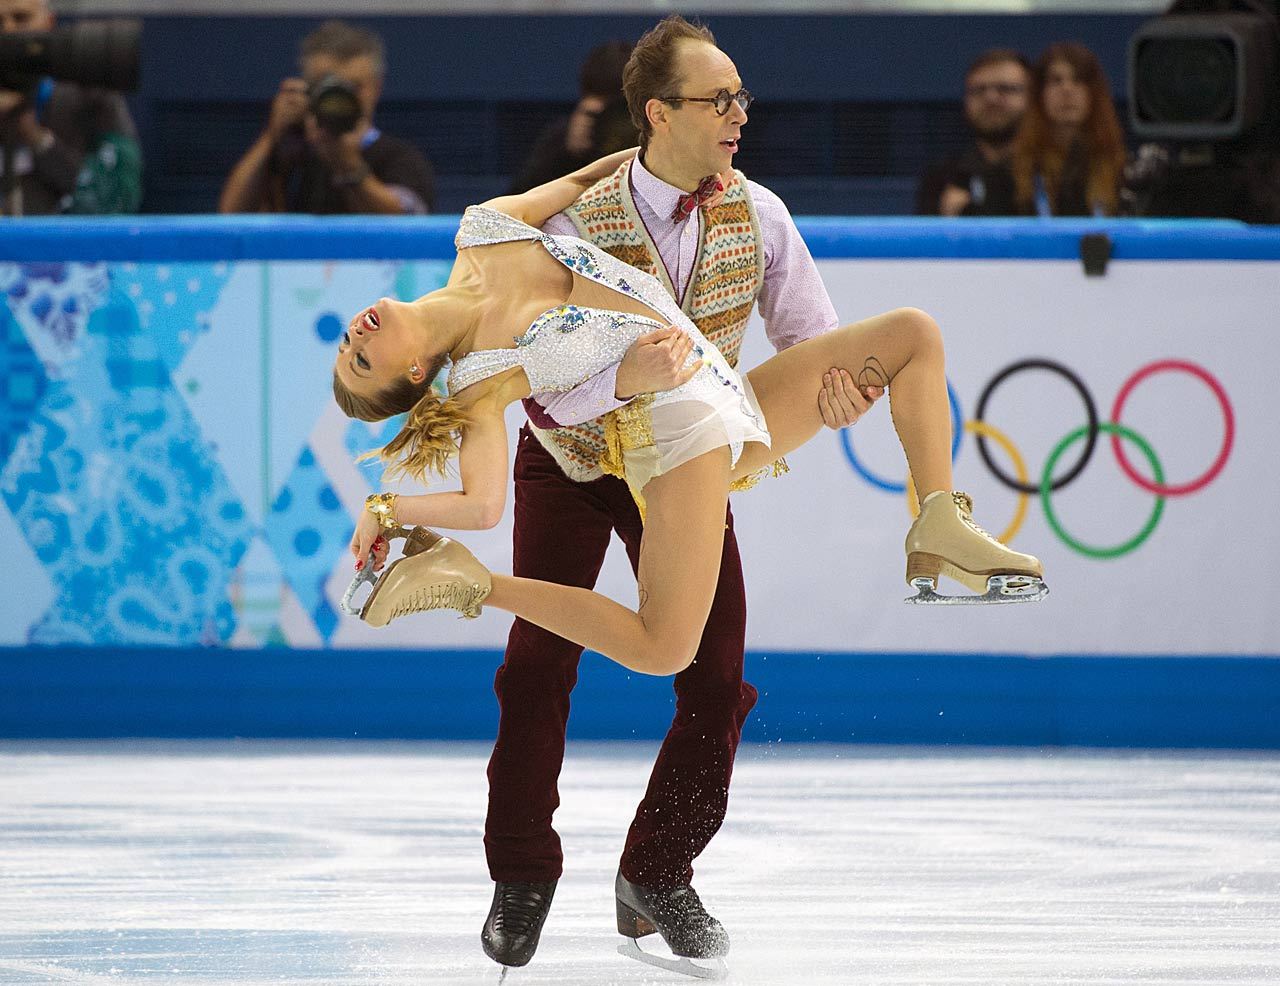 Nelli Zhiganshina and Alexander Gazsi of Germany perform in the Team Ice Dance competition.